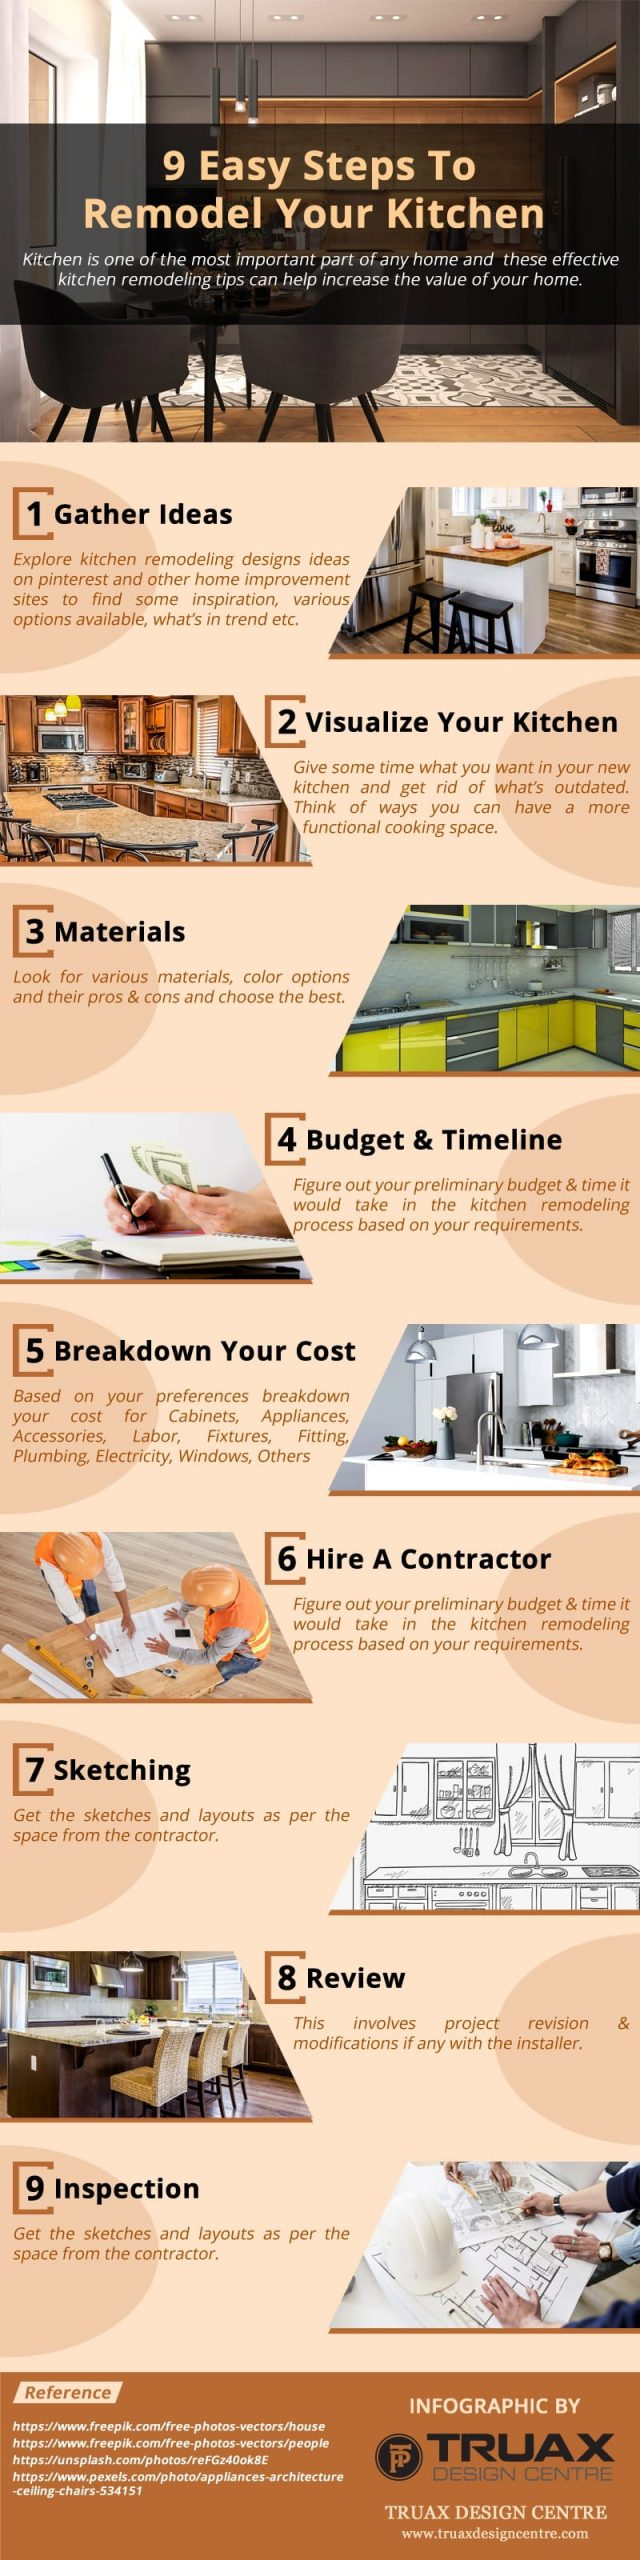 The Do's and Don'ts of a Kitchen Remodel. An infographic of pros of remodelling the kitchen